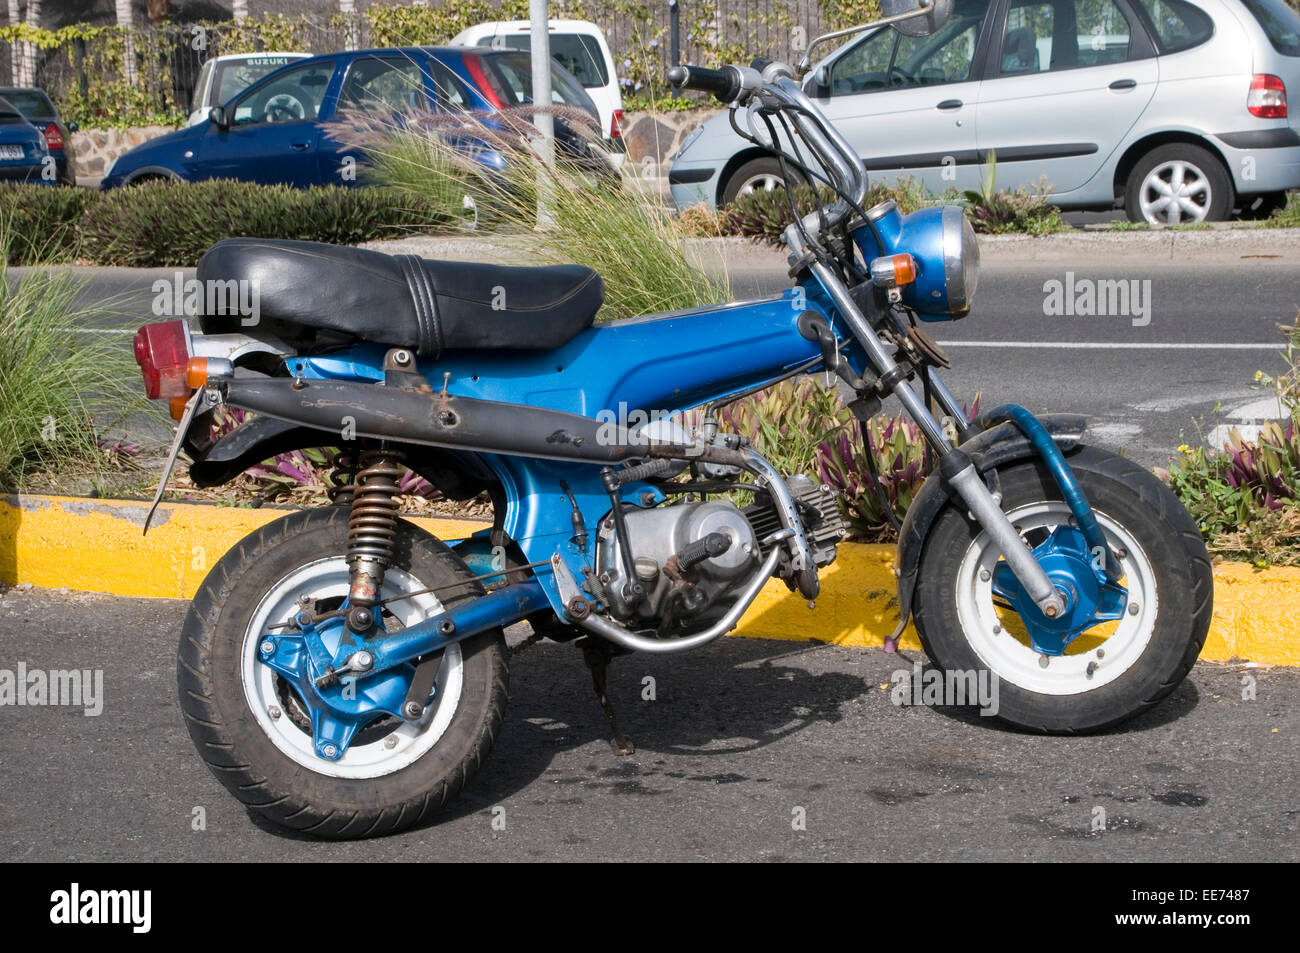 Mini Bike Stock Photos Images Alamy Old Honda Bikes Monkey Motorbike Motorbikes Motor Cycle Cycles Miniture Image